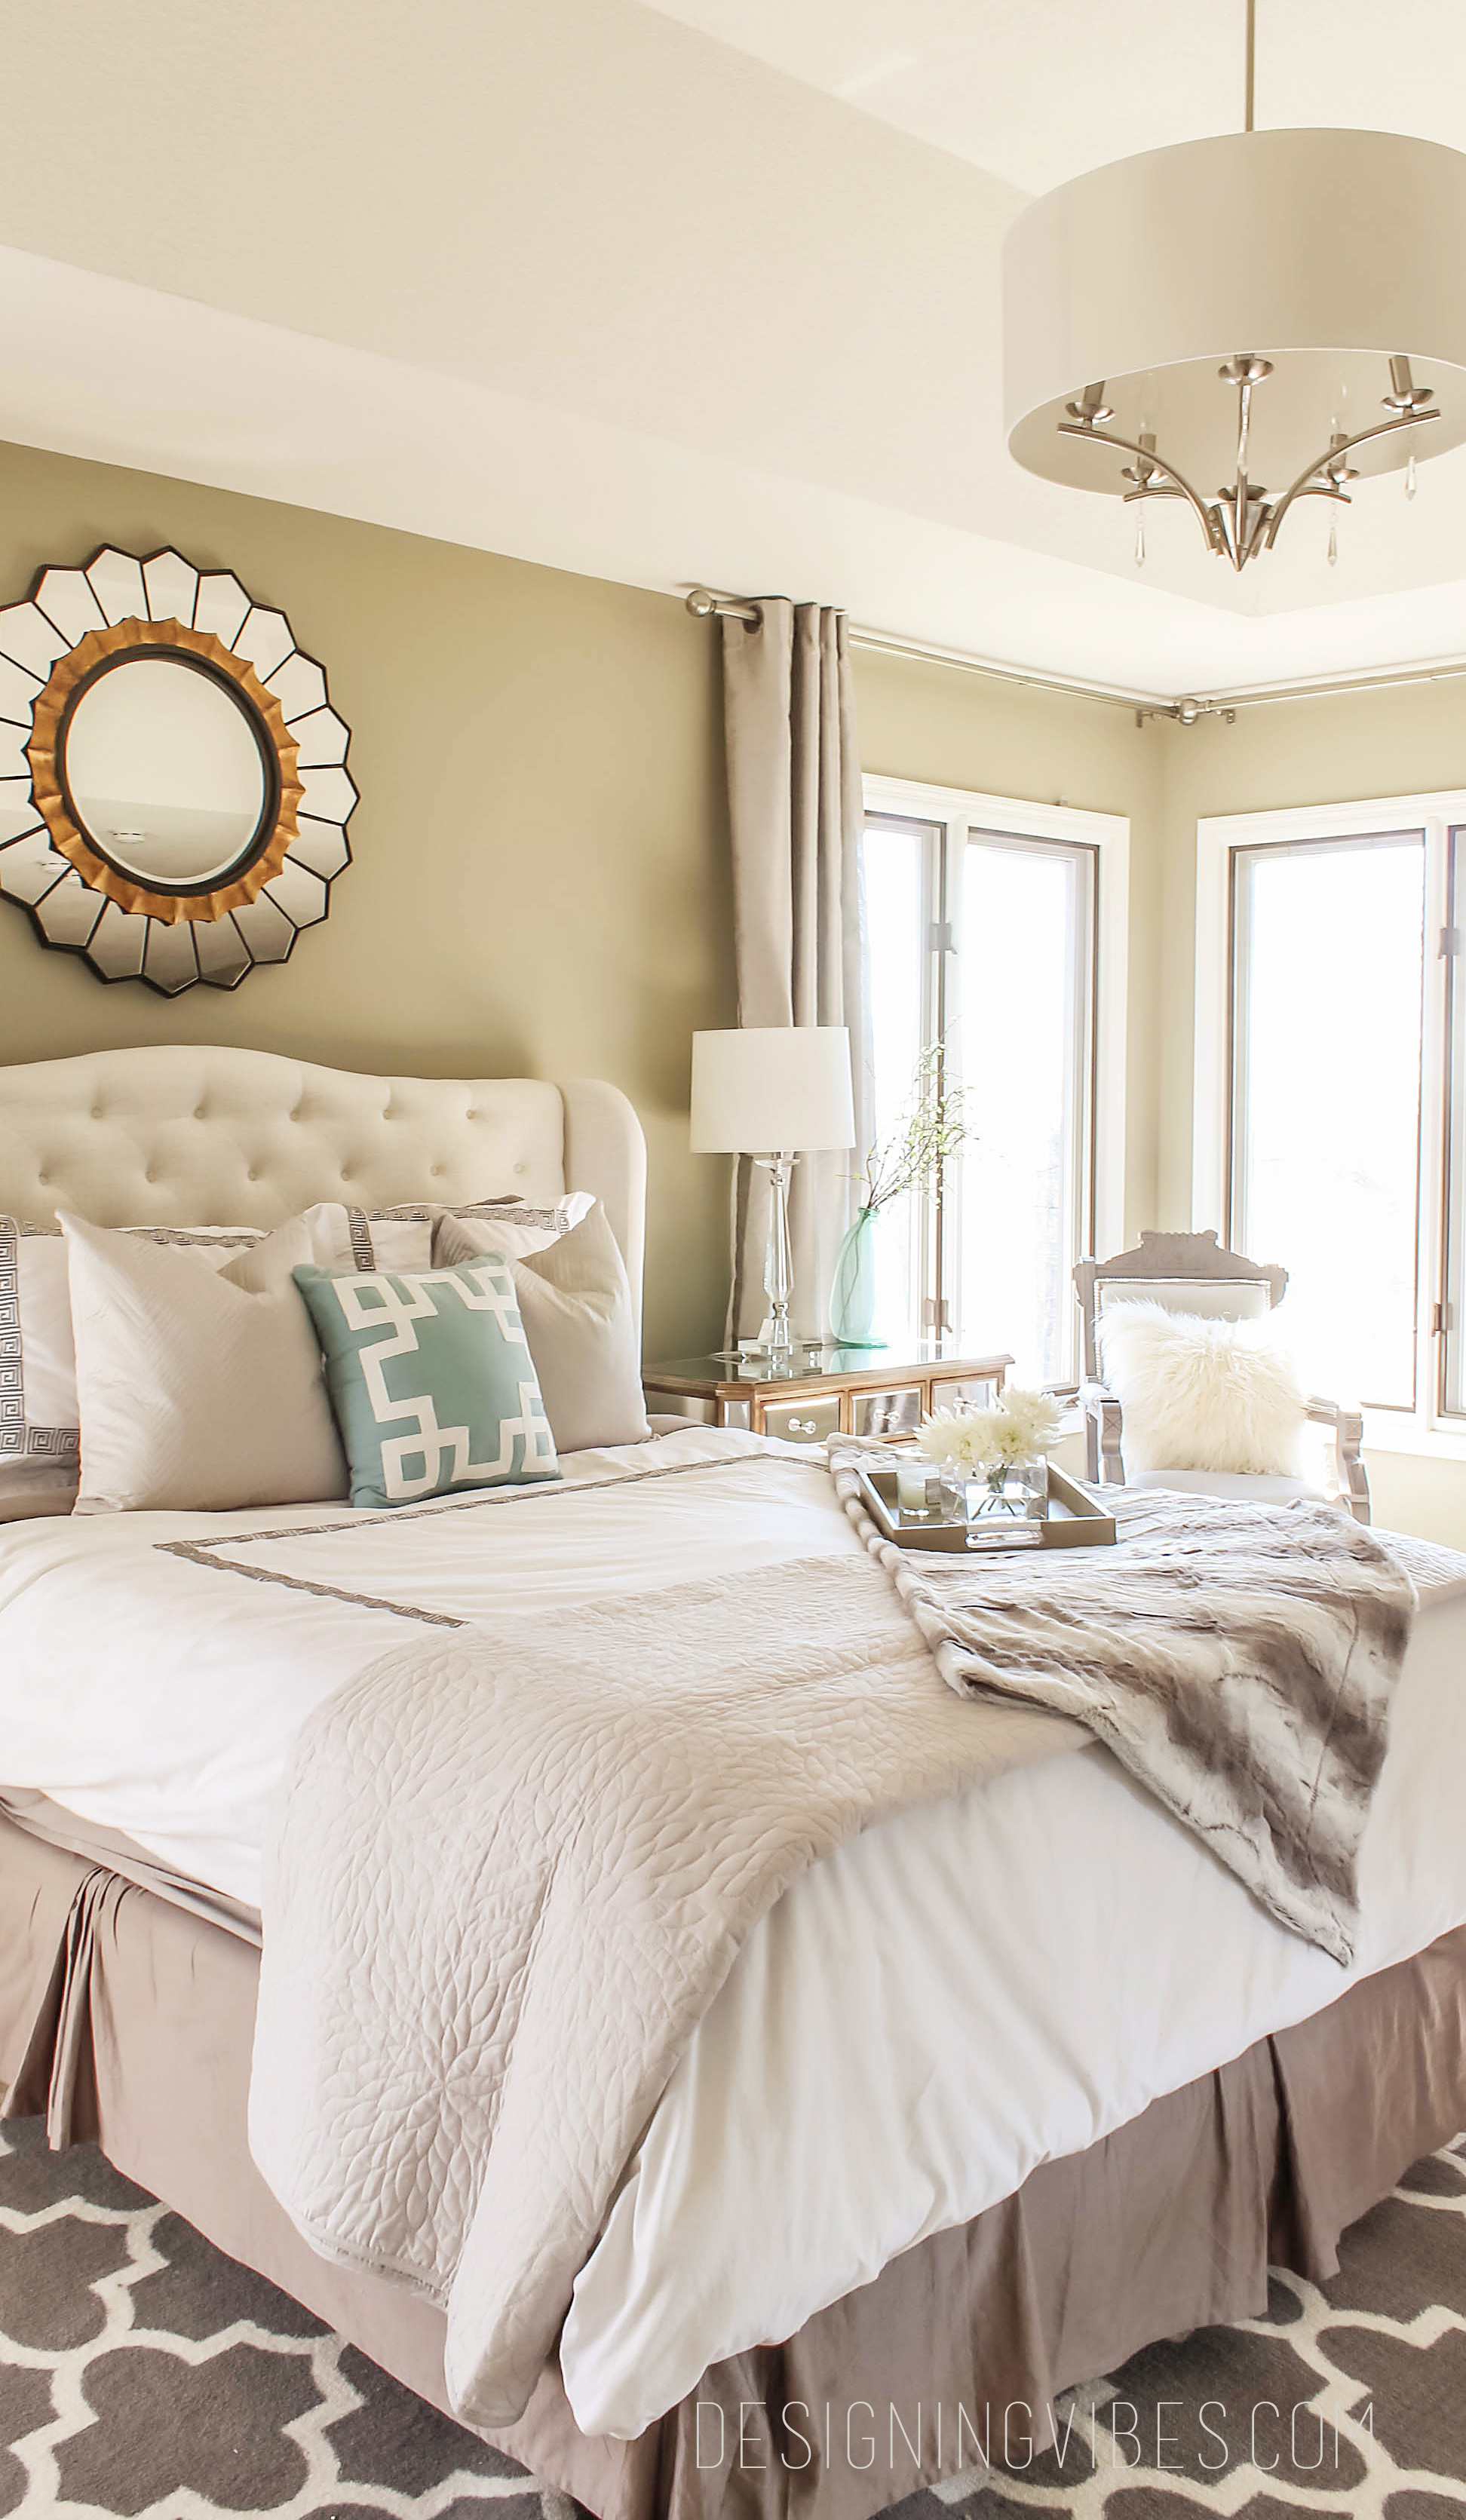 Gray And Turquoise Bedroom. gray and turquoise bedroom Designing Romantic Vibes in the Bedroom  Interior Design